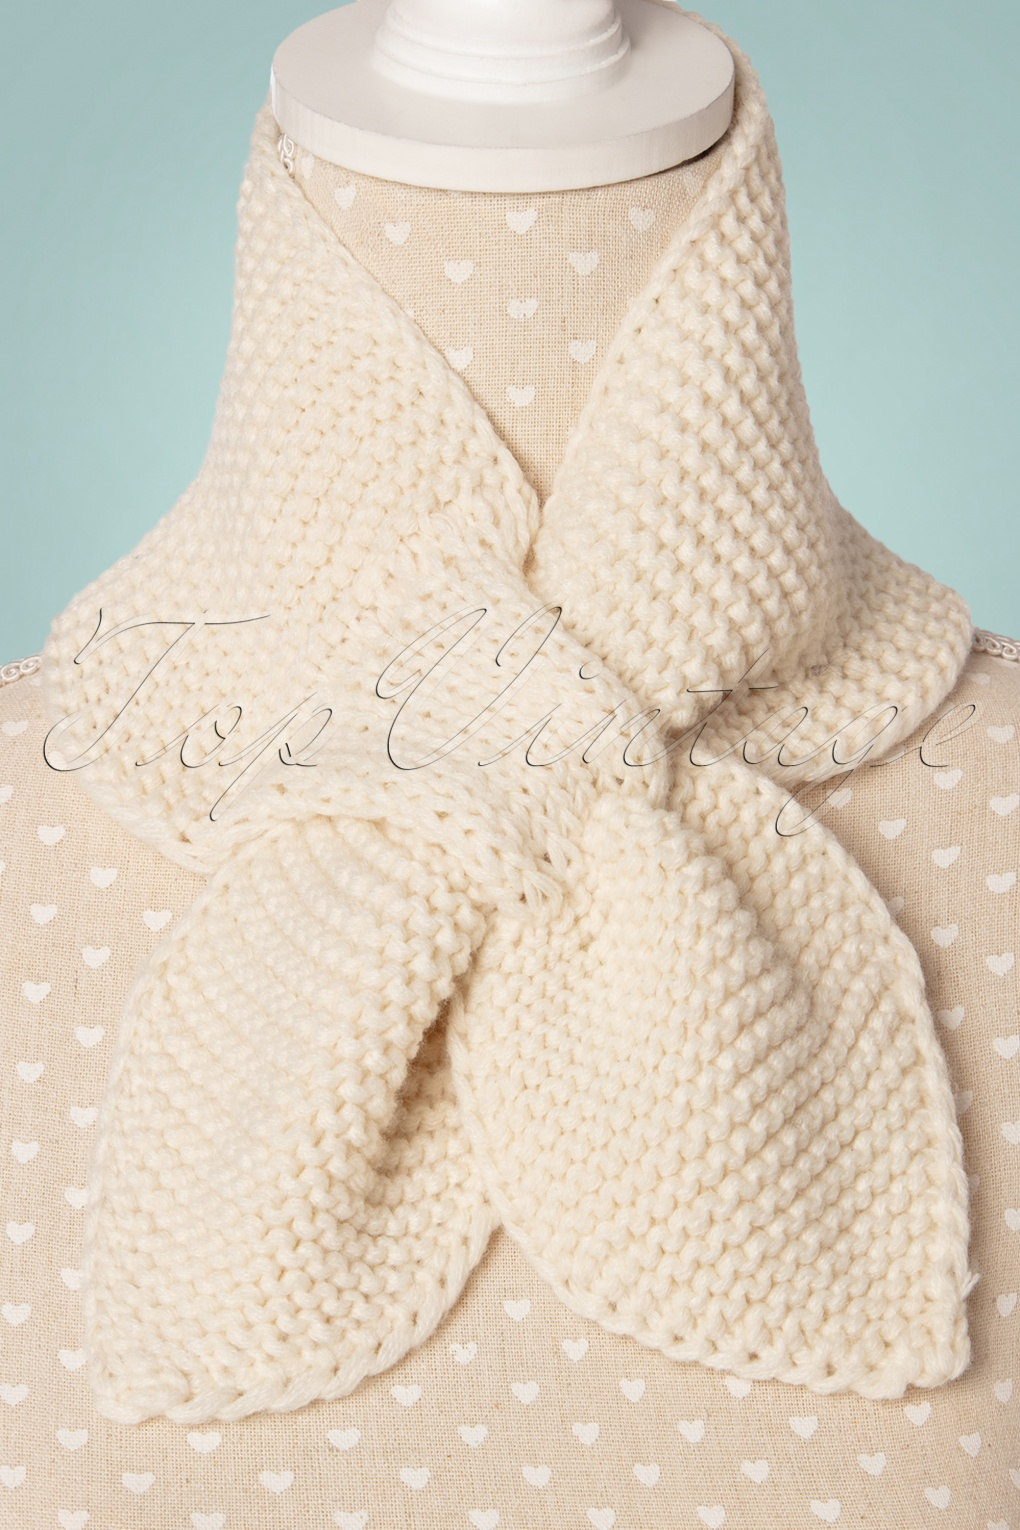 Vintage Sweaters, Retro Sweaters & Cardigan 50s Fru Fru Knitted Scarf in Cream £12.48 AT vintagedancer.com